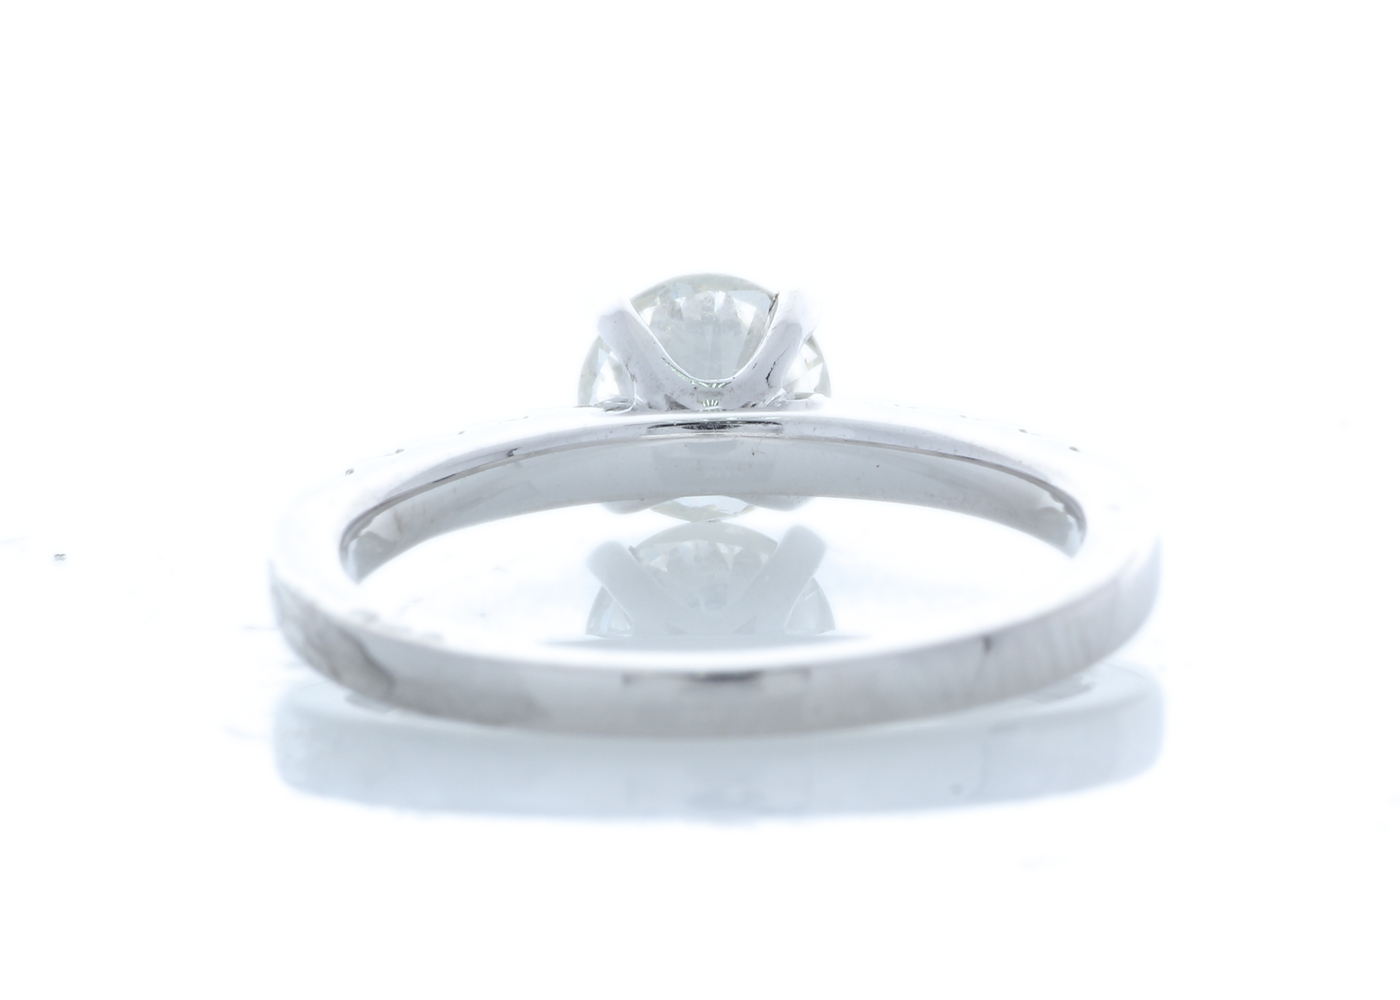 18ct White Gold Stone Set Shoulders Diamond Ring 0.90 Carats - Image 4 of 5